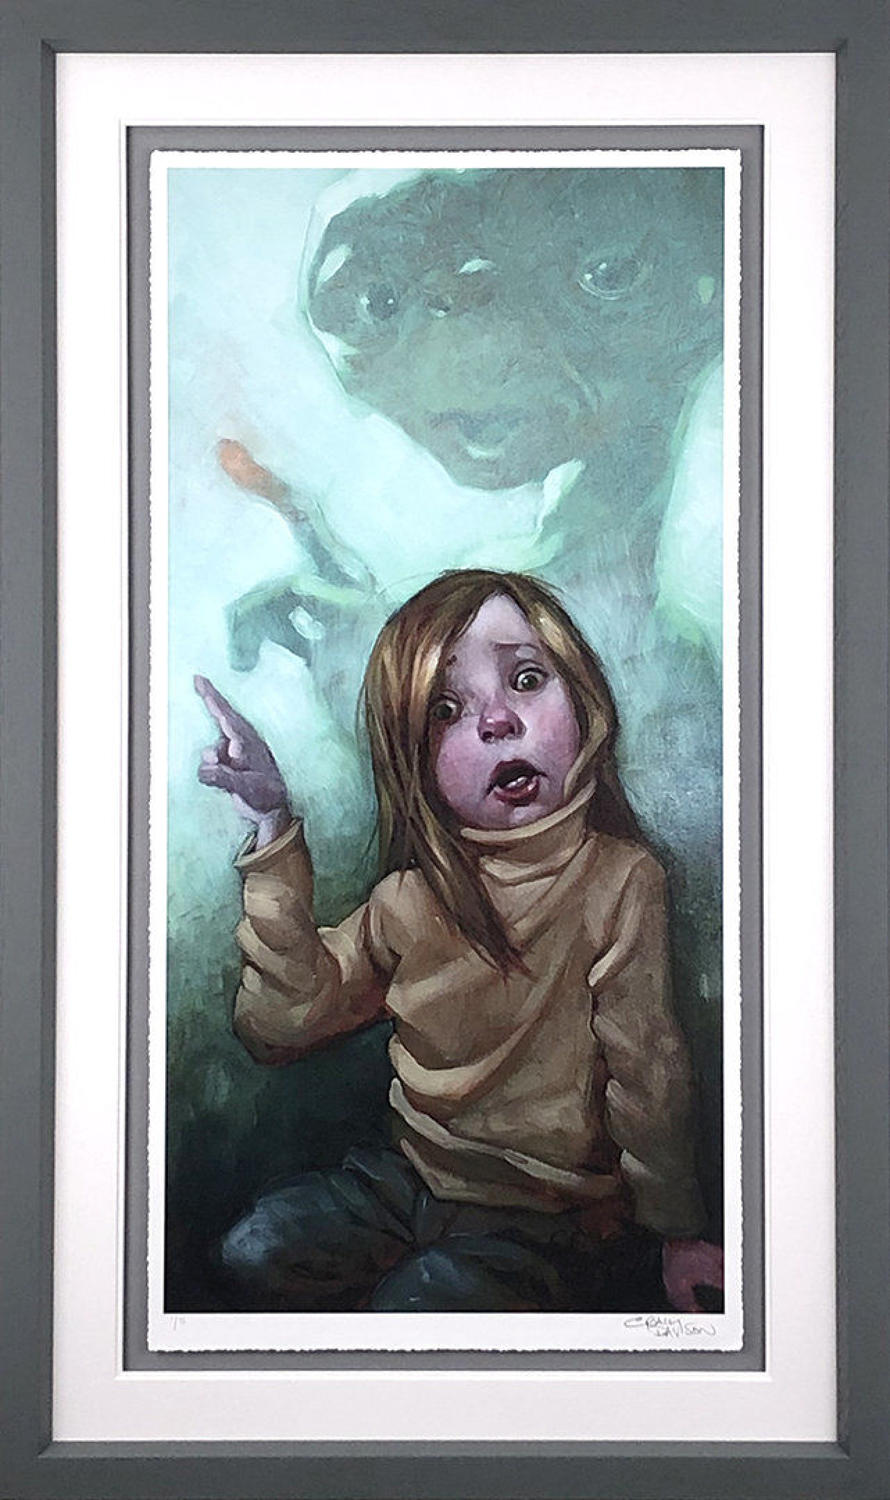 Owwwch By Craig Davison Framed Art Print